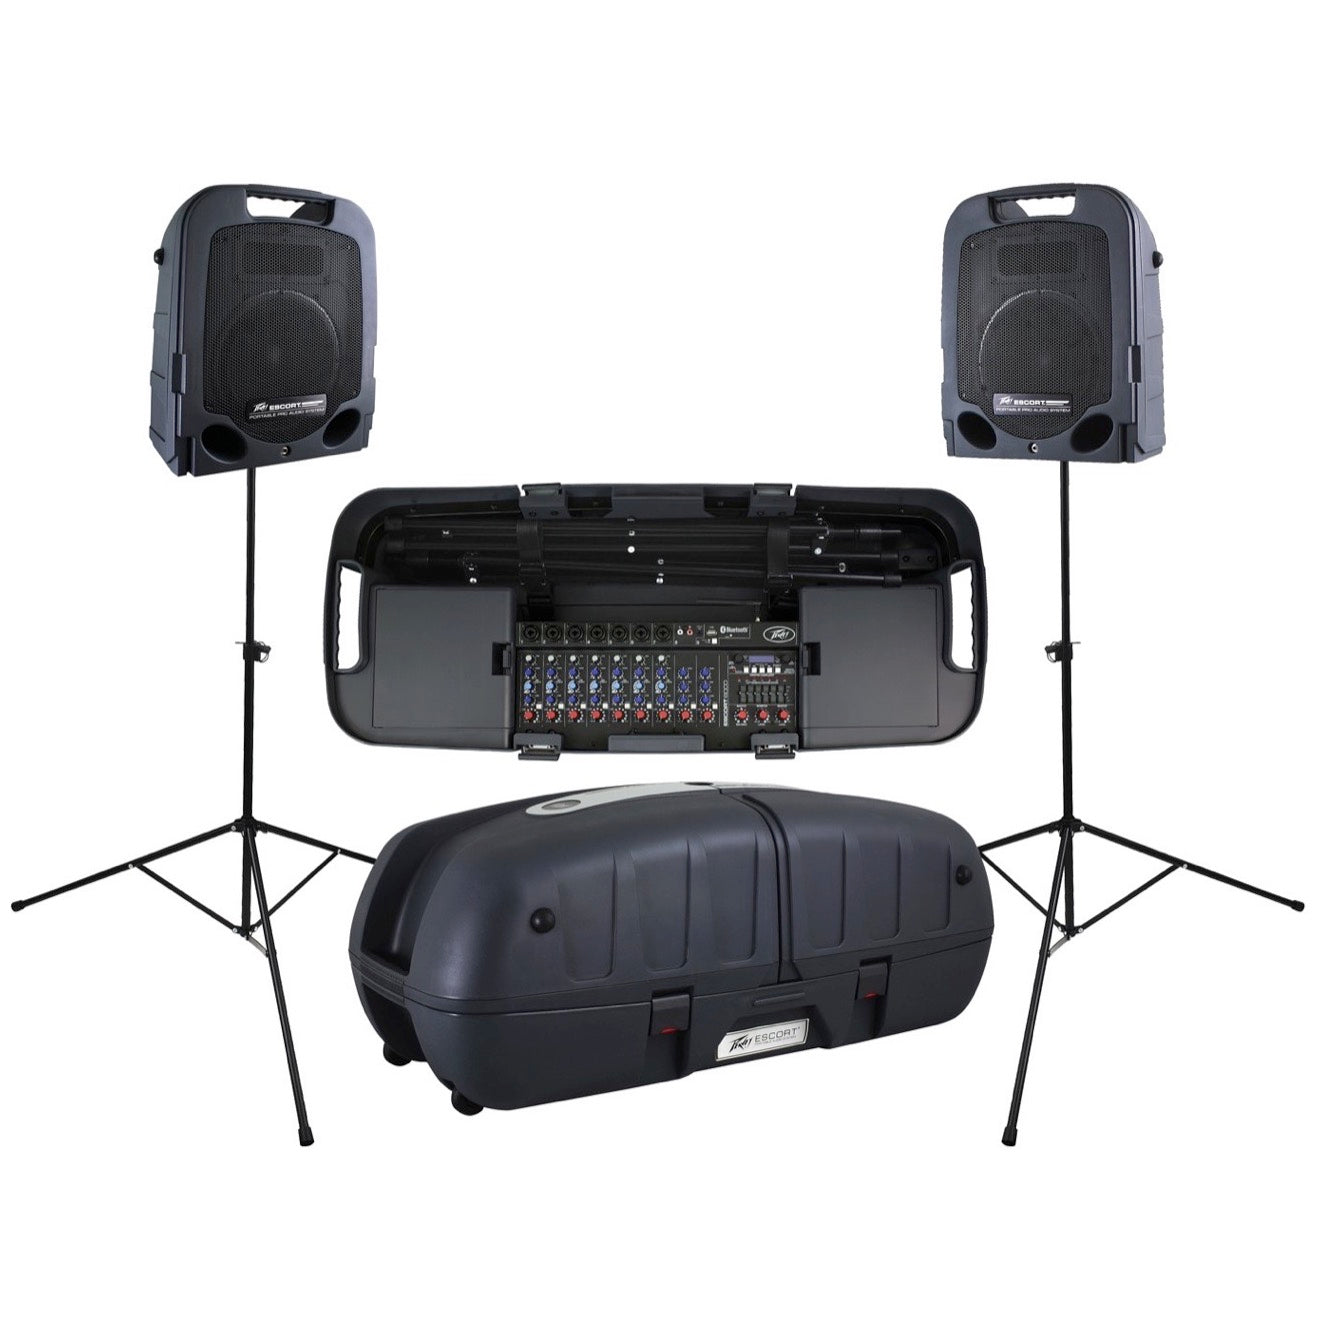 Peavey Escort 6000 Portable Sound System